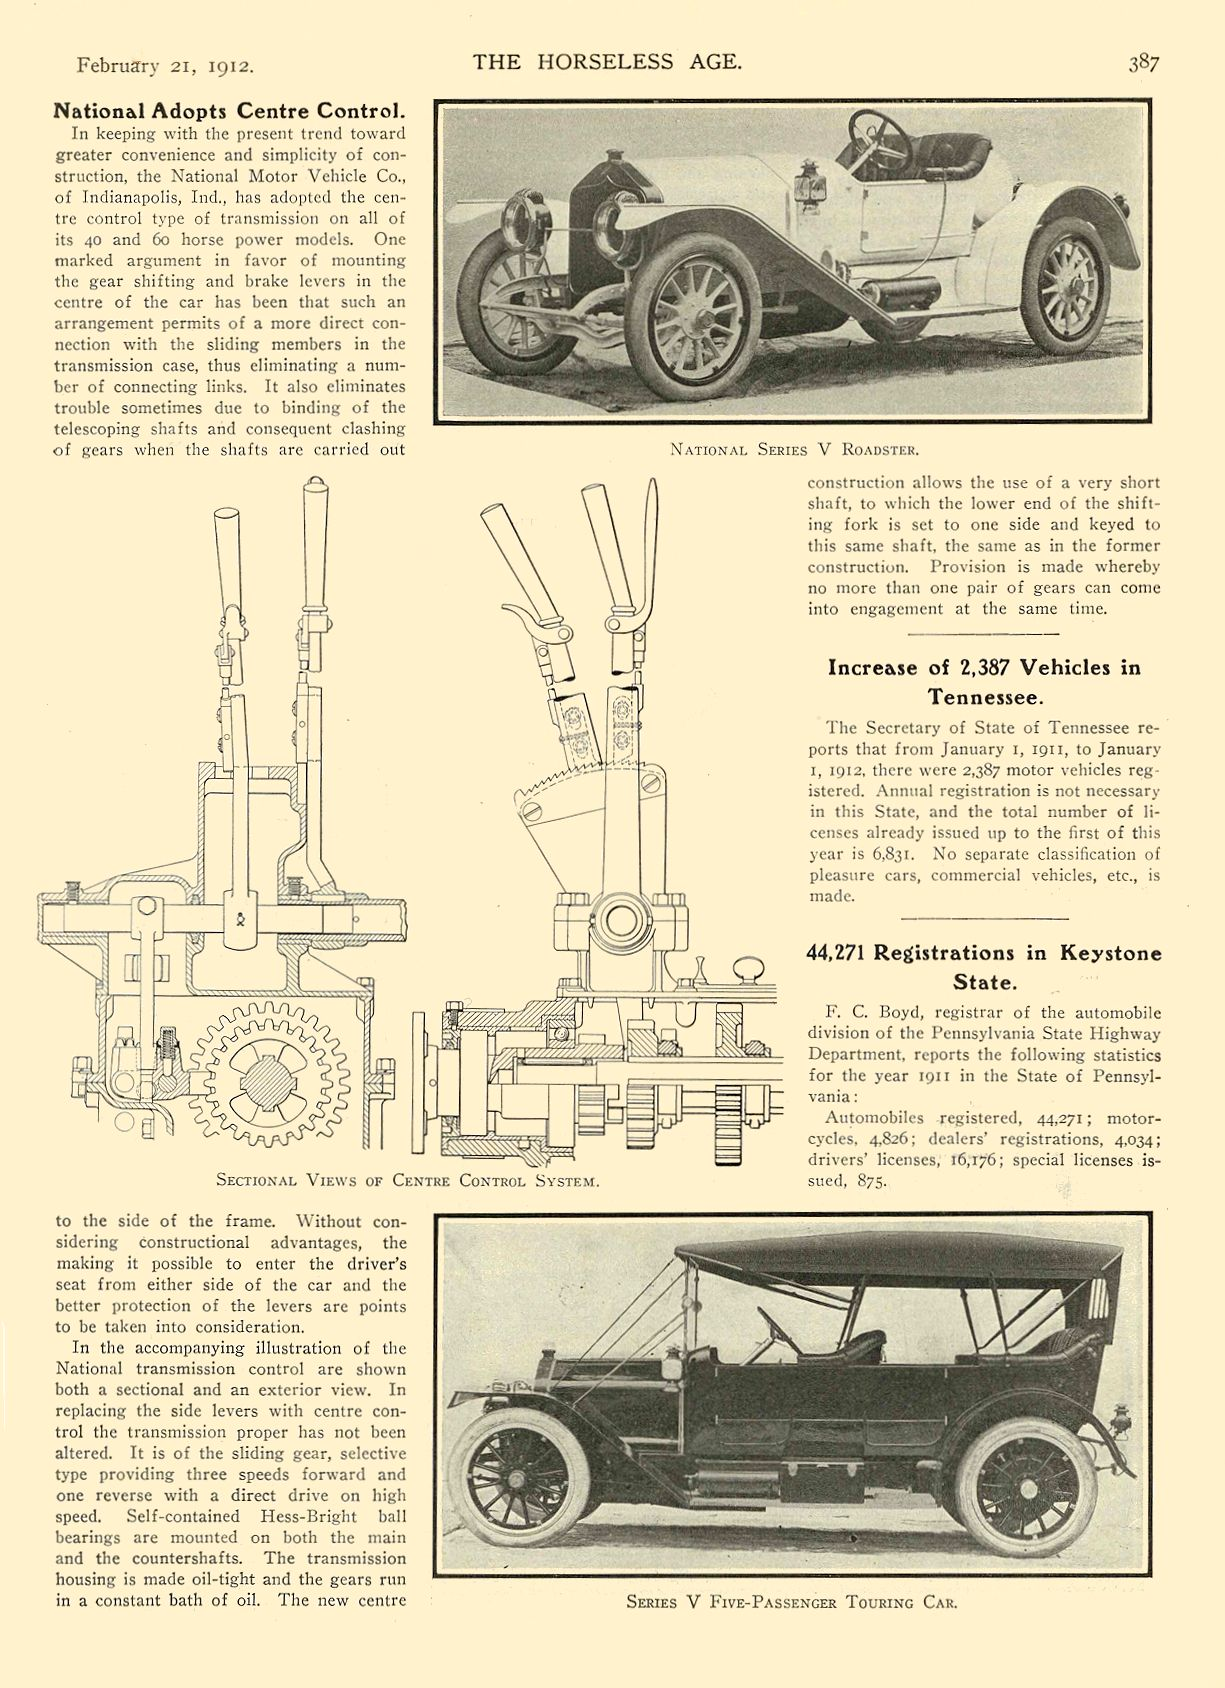 1912 2 21 NATIONAL Article National Adopts Centre Control National MOTOR VEHICLE CO. Indianapolis, IND THE HORSELESS AGE February 21, 1912 8.25″x12″ page 387